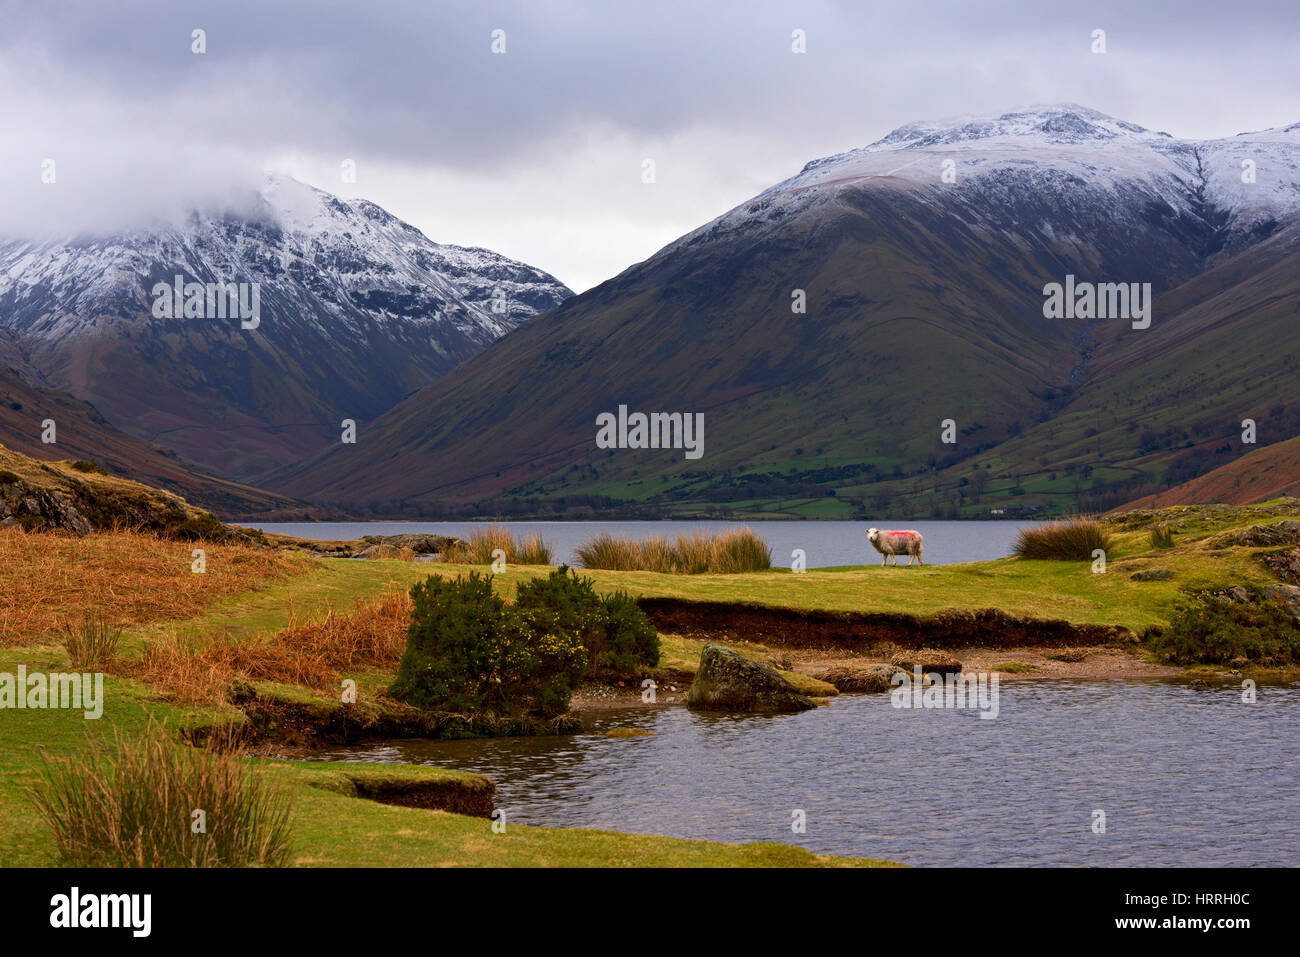 Herdwick sheep, Wastwater, Wasdale, Lake District National Park, Cumbria, England UK Stock Photo